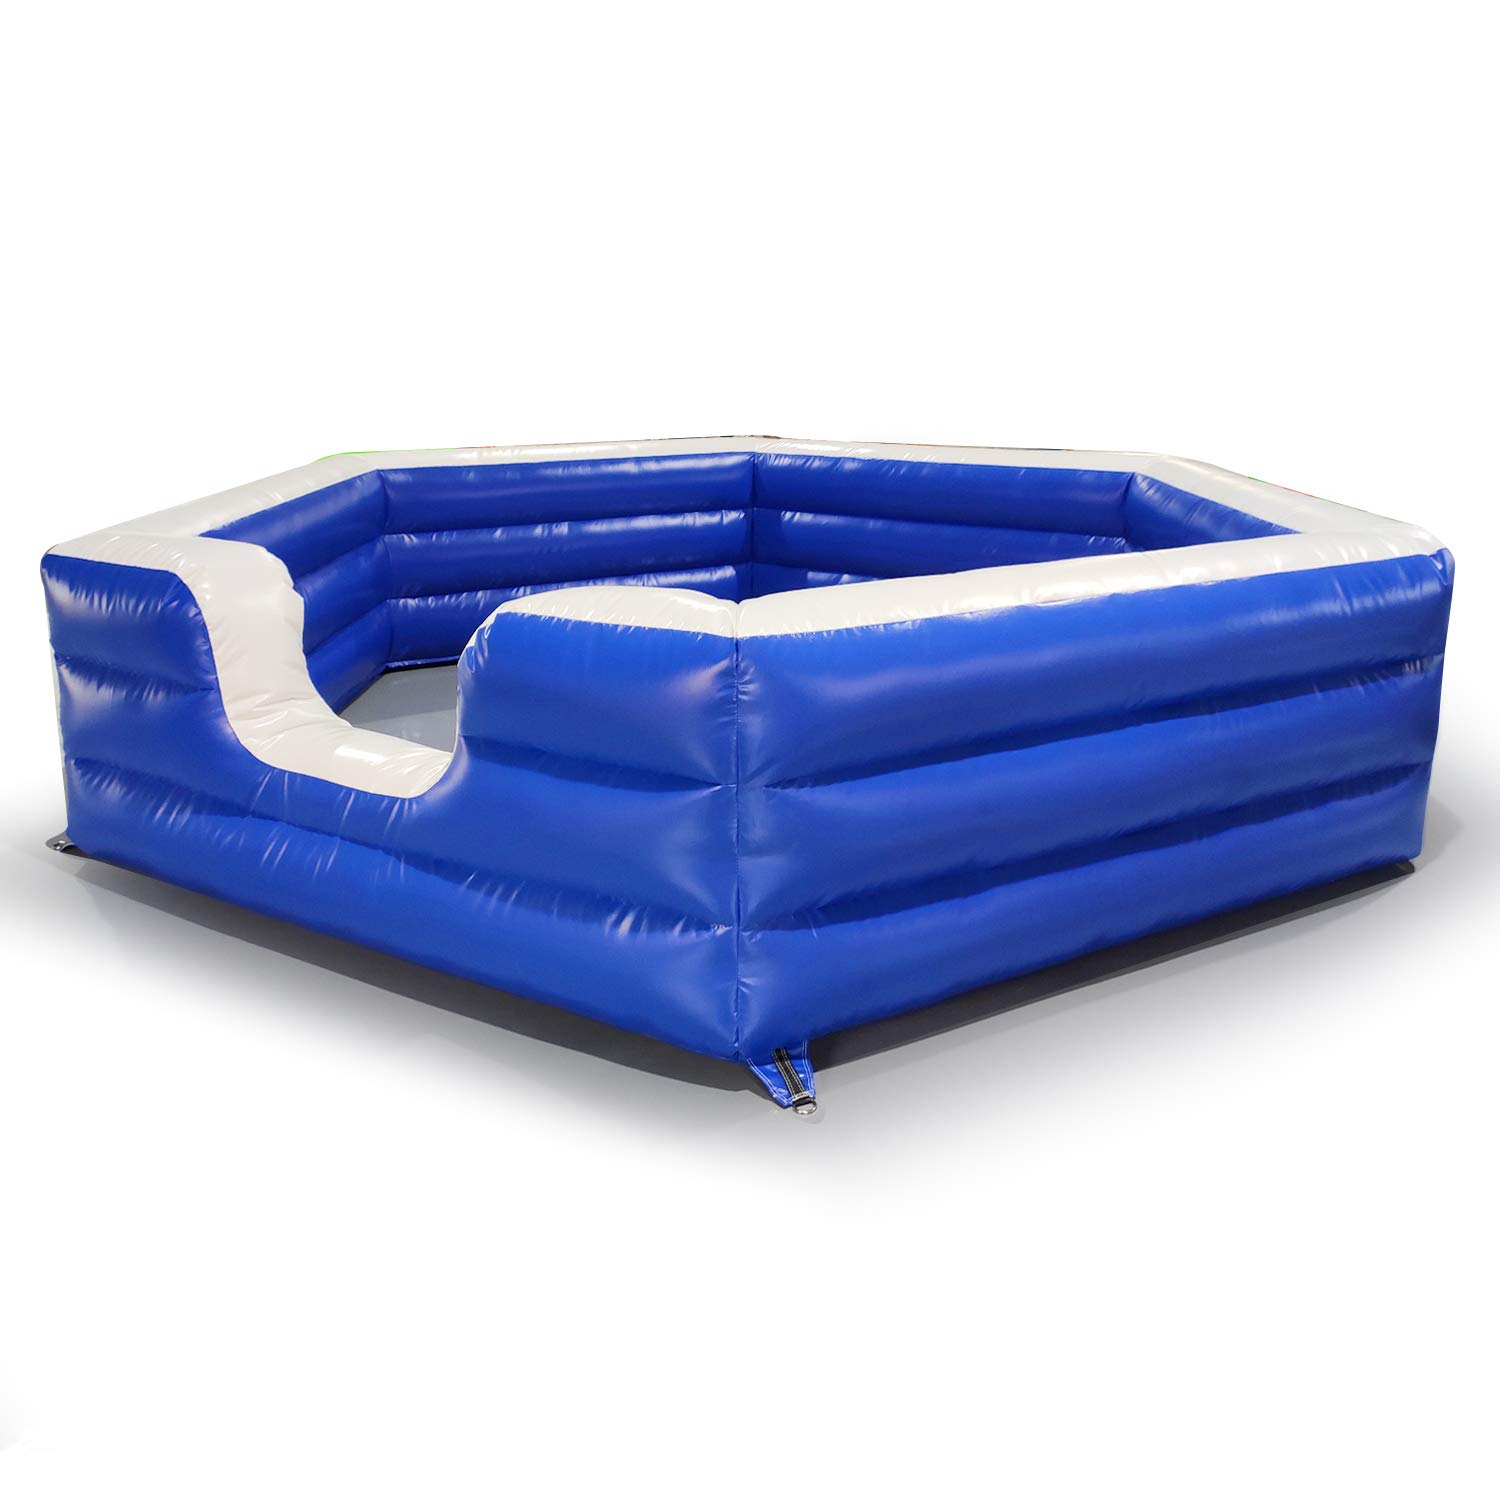 15ft PVC Gaga Ball Pit Inflatable with Air Pump Team Game